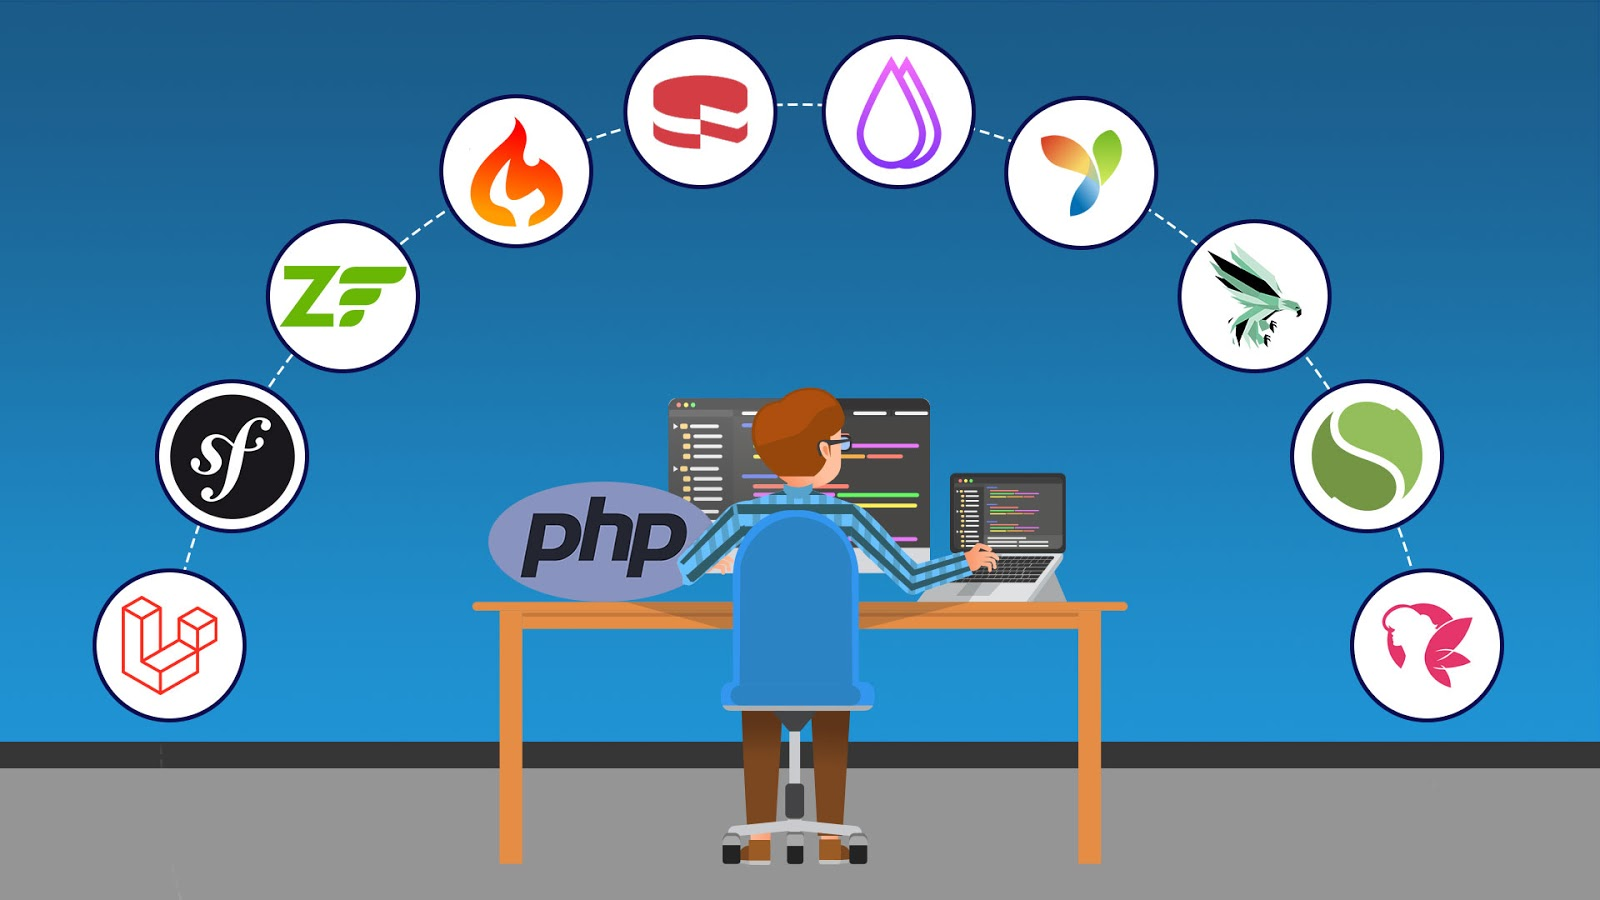 php options graphic